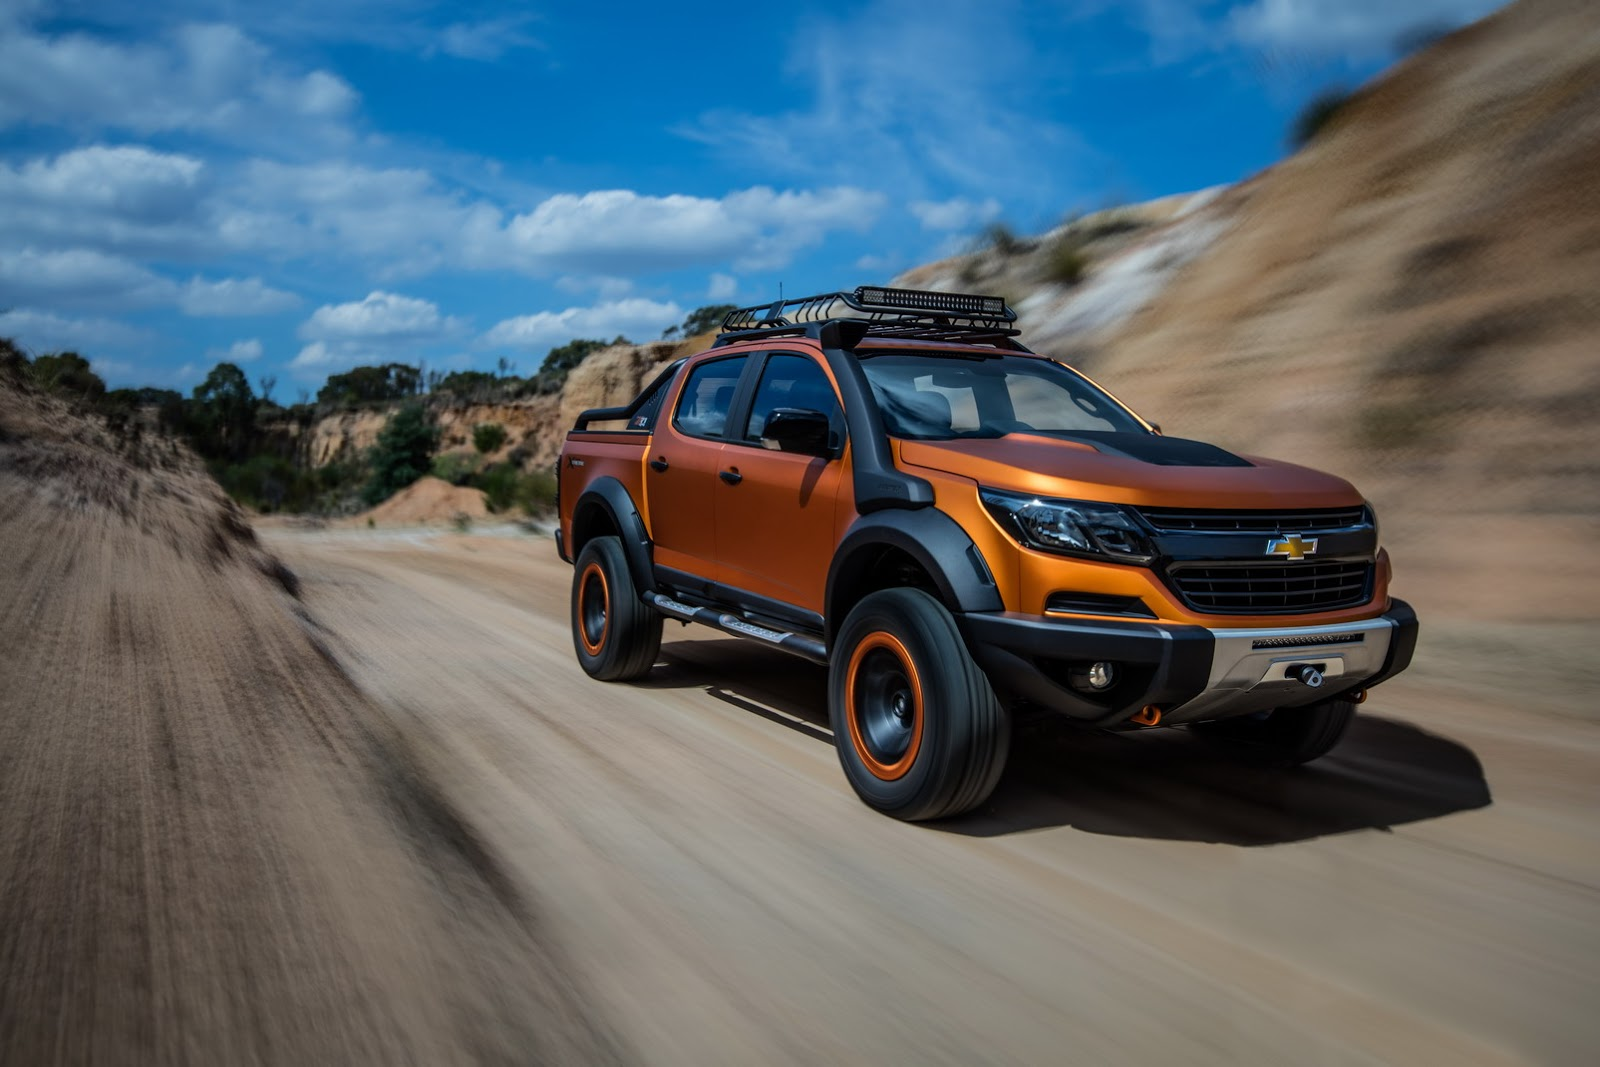 Leader Auto Sales >> Chevrolet Colorado Xtreme Study Previews The Global Model's Facelift - carscoops.com